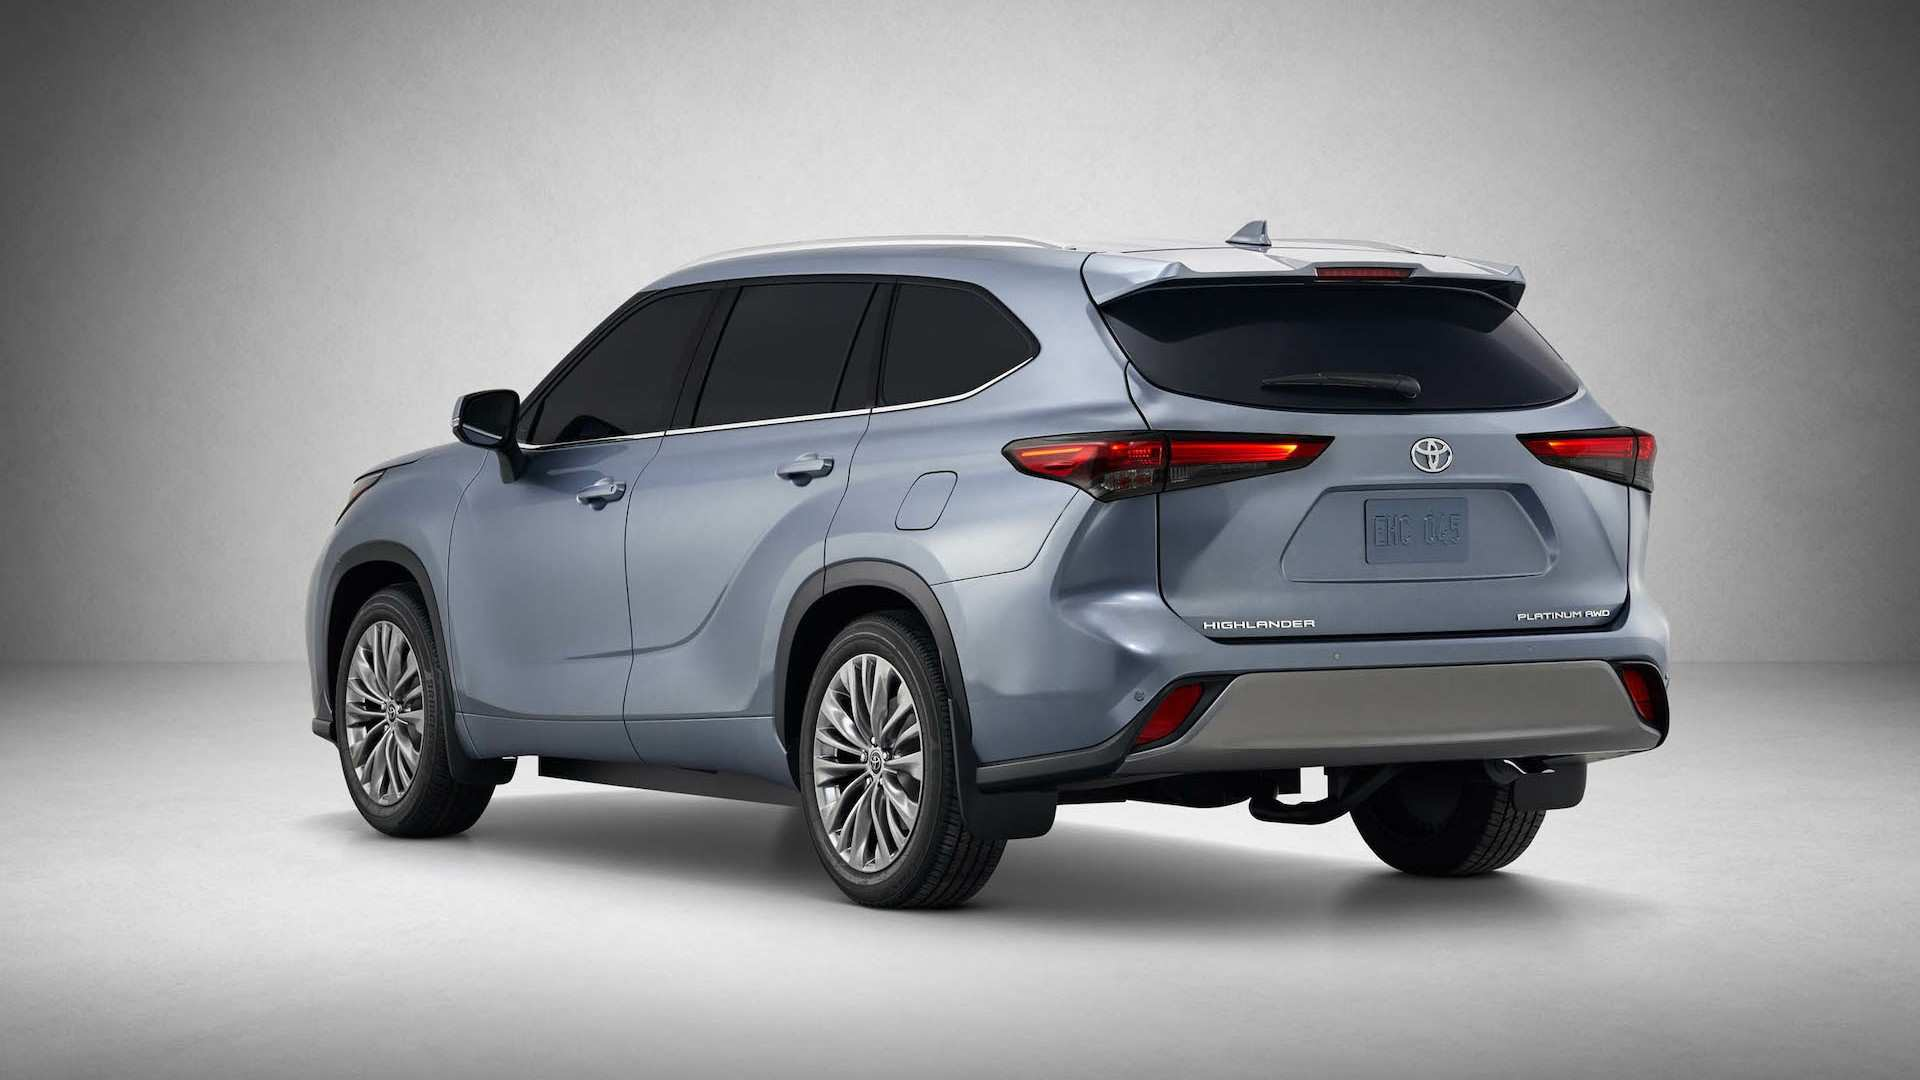 68 New Toyota Kluger 2020 Configurations with Toyota Kluger 2020